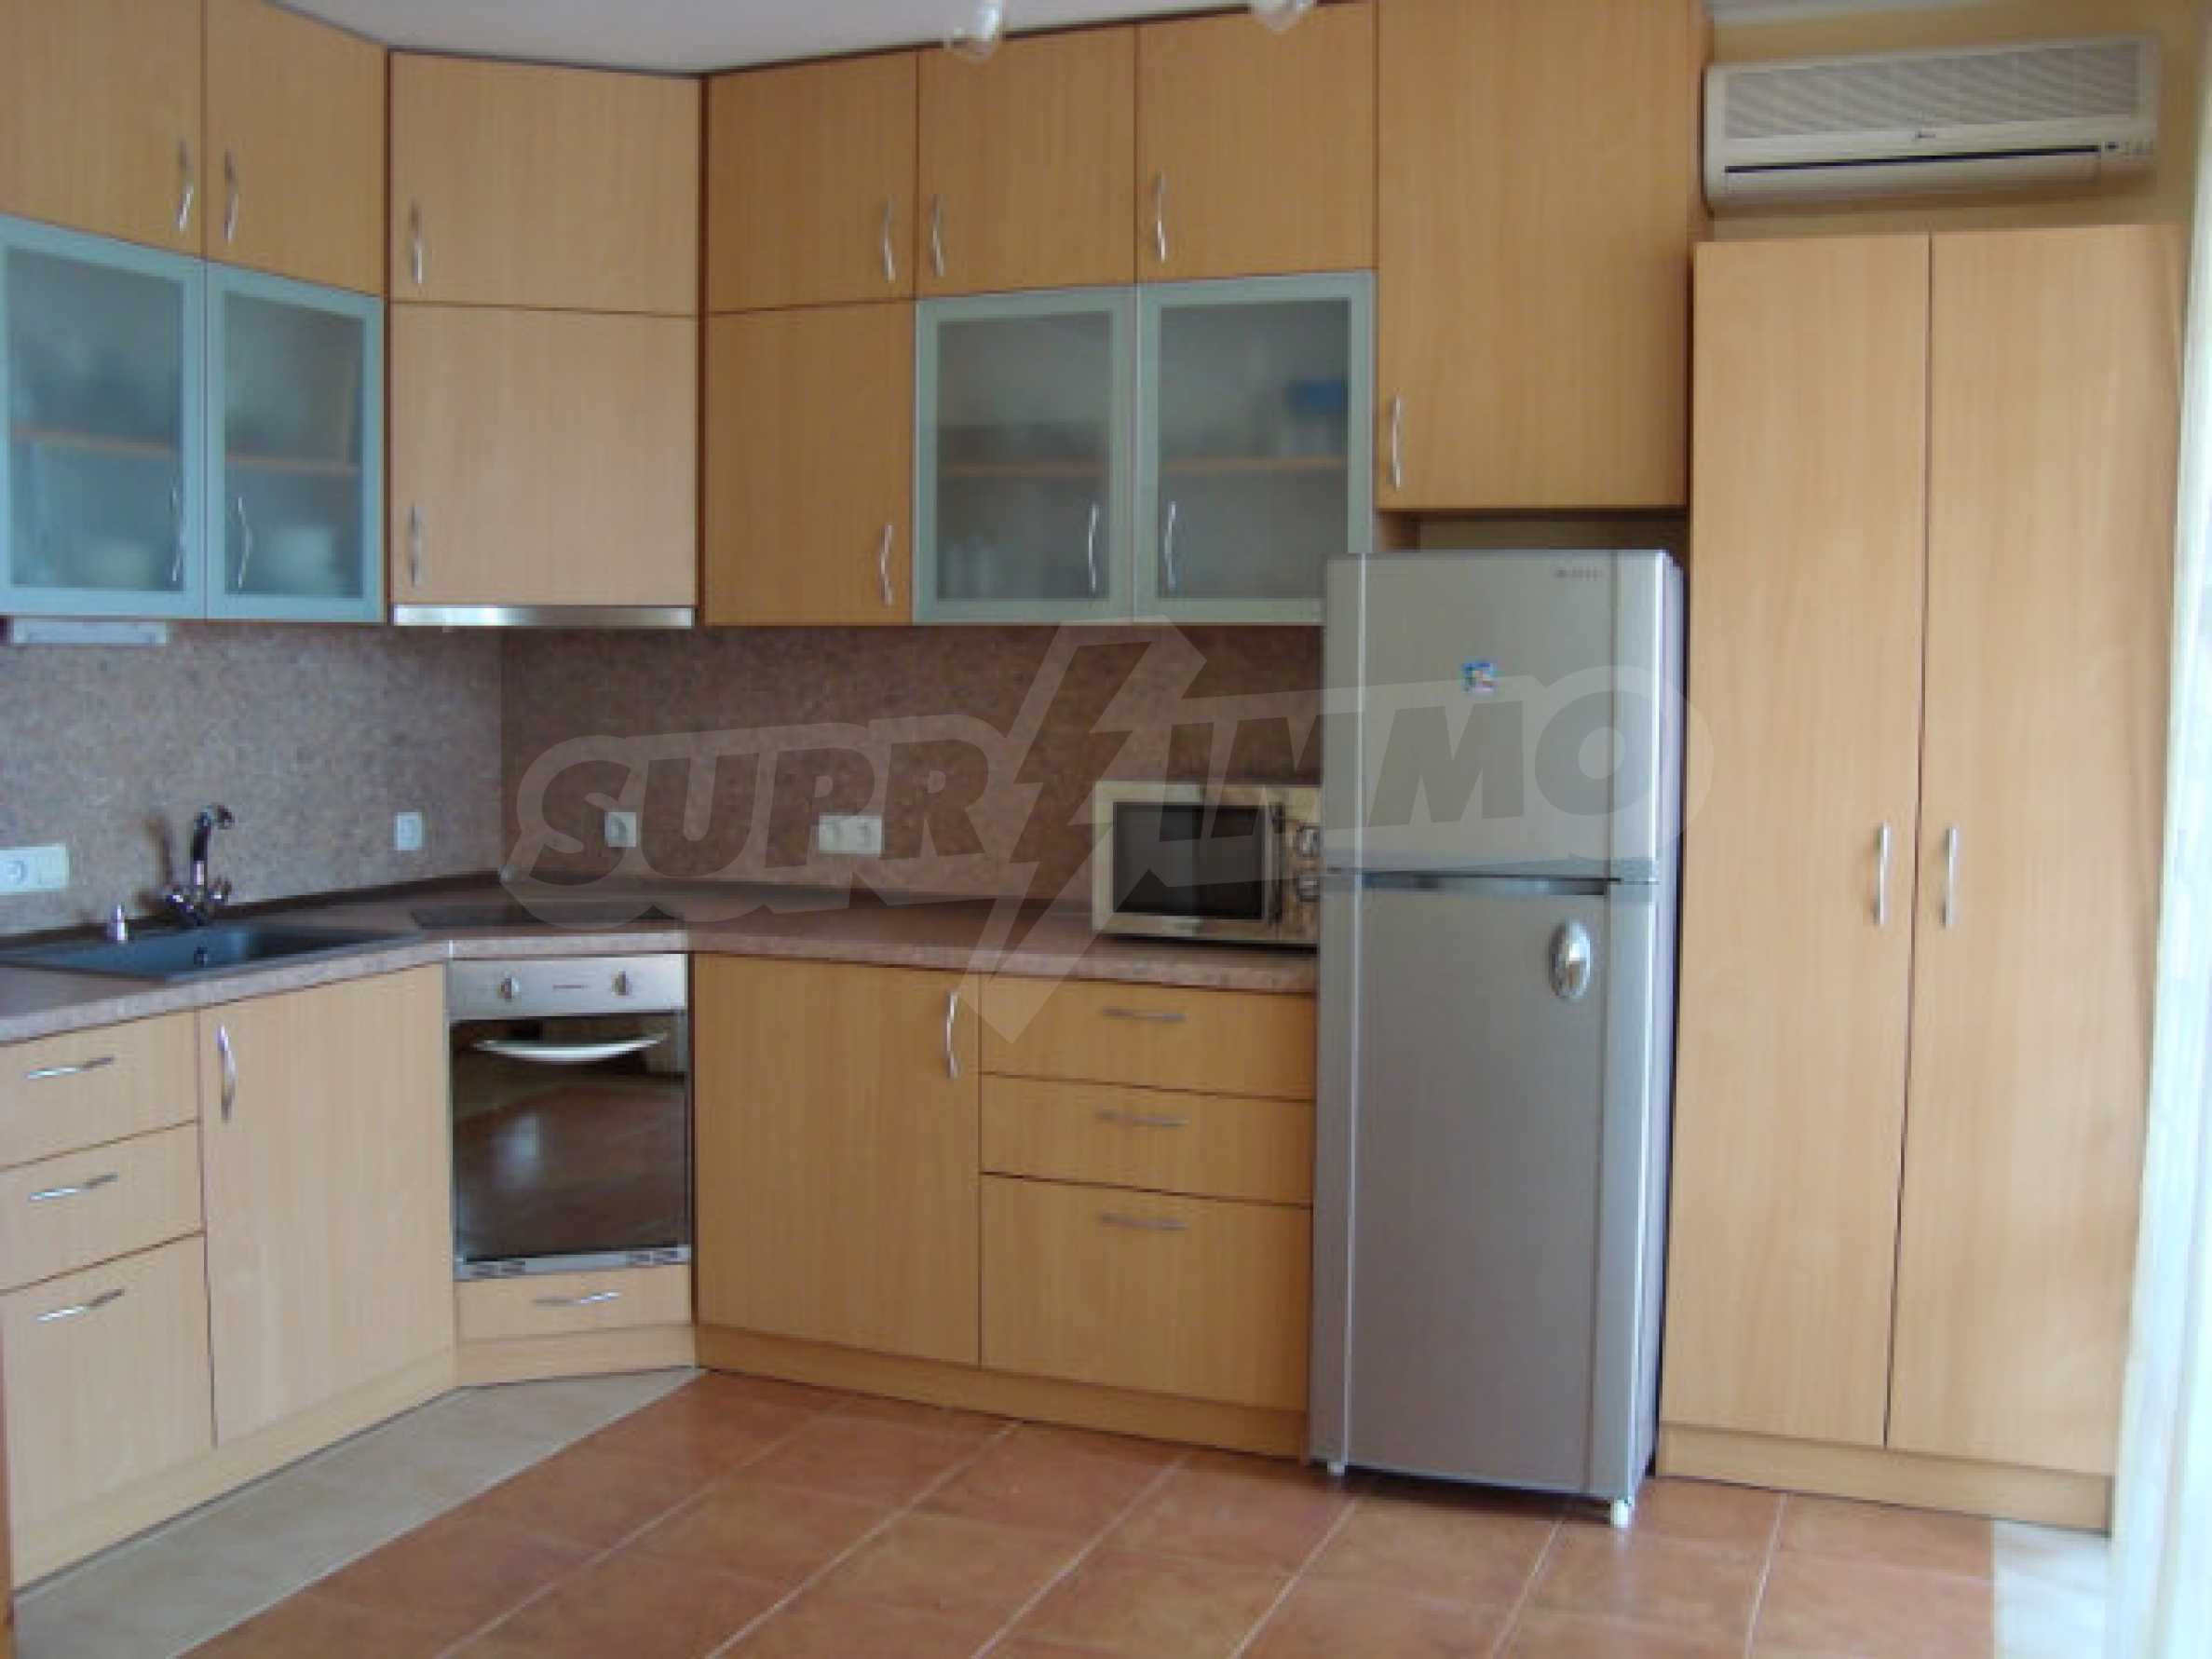 Two-bedroom apartment in Saint Nicholas complex in Chernomorets 8